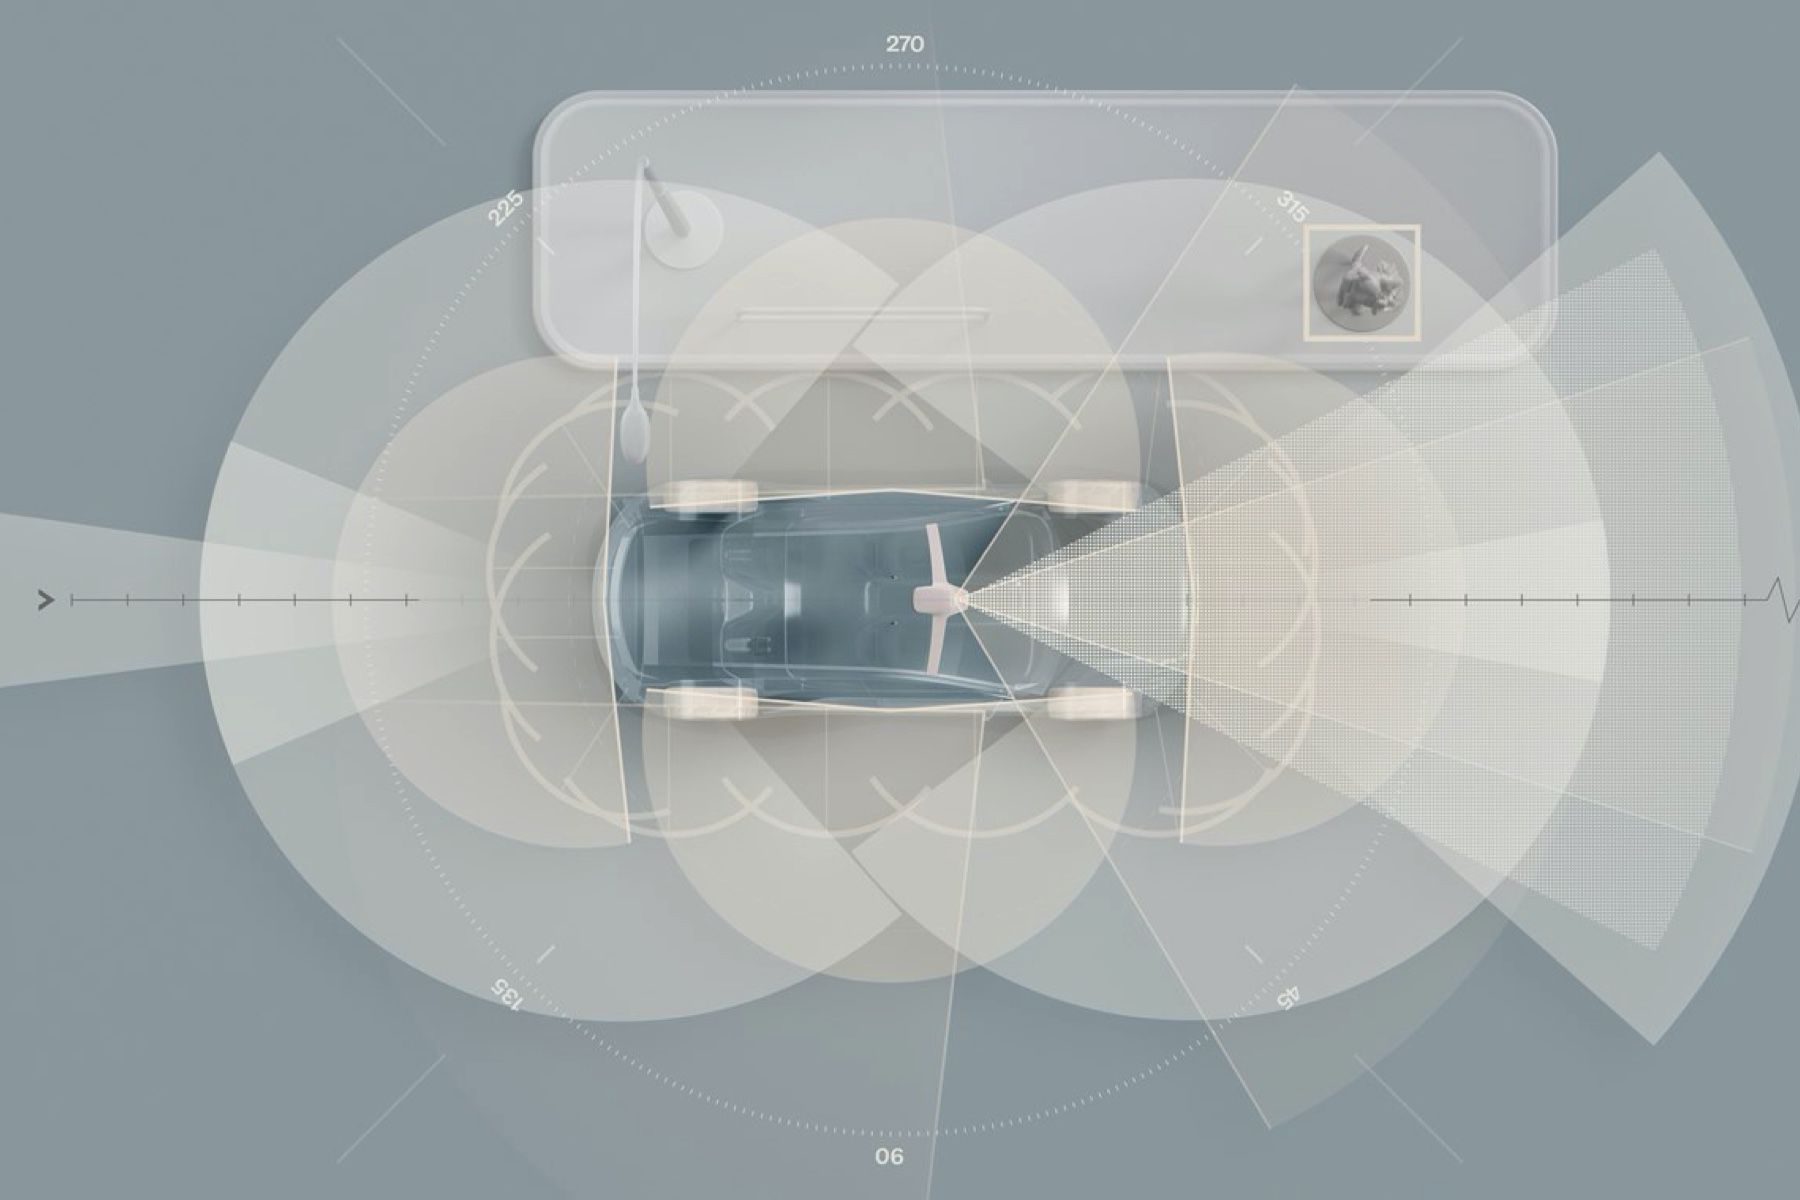 Volvo's upcoming electric XC90 with LiDAR as standard